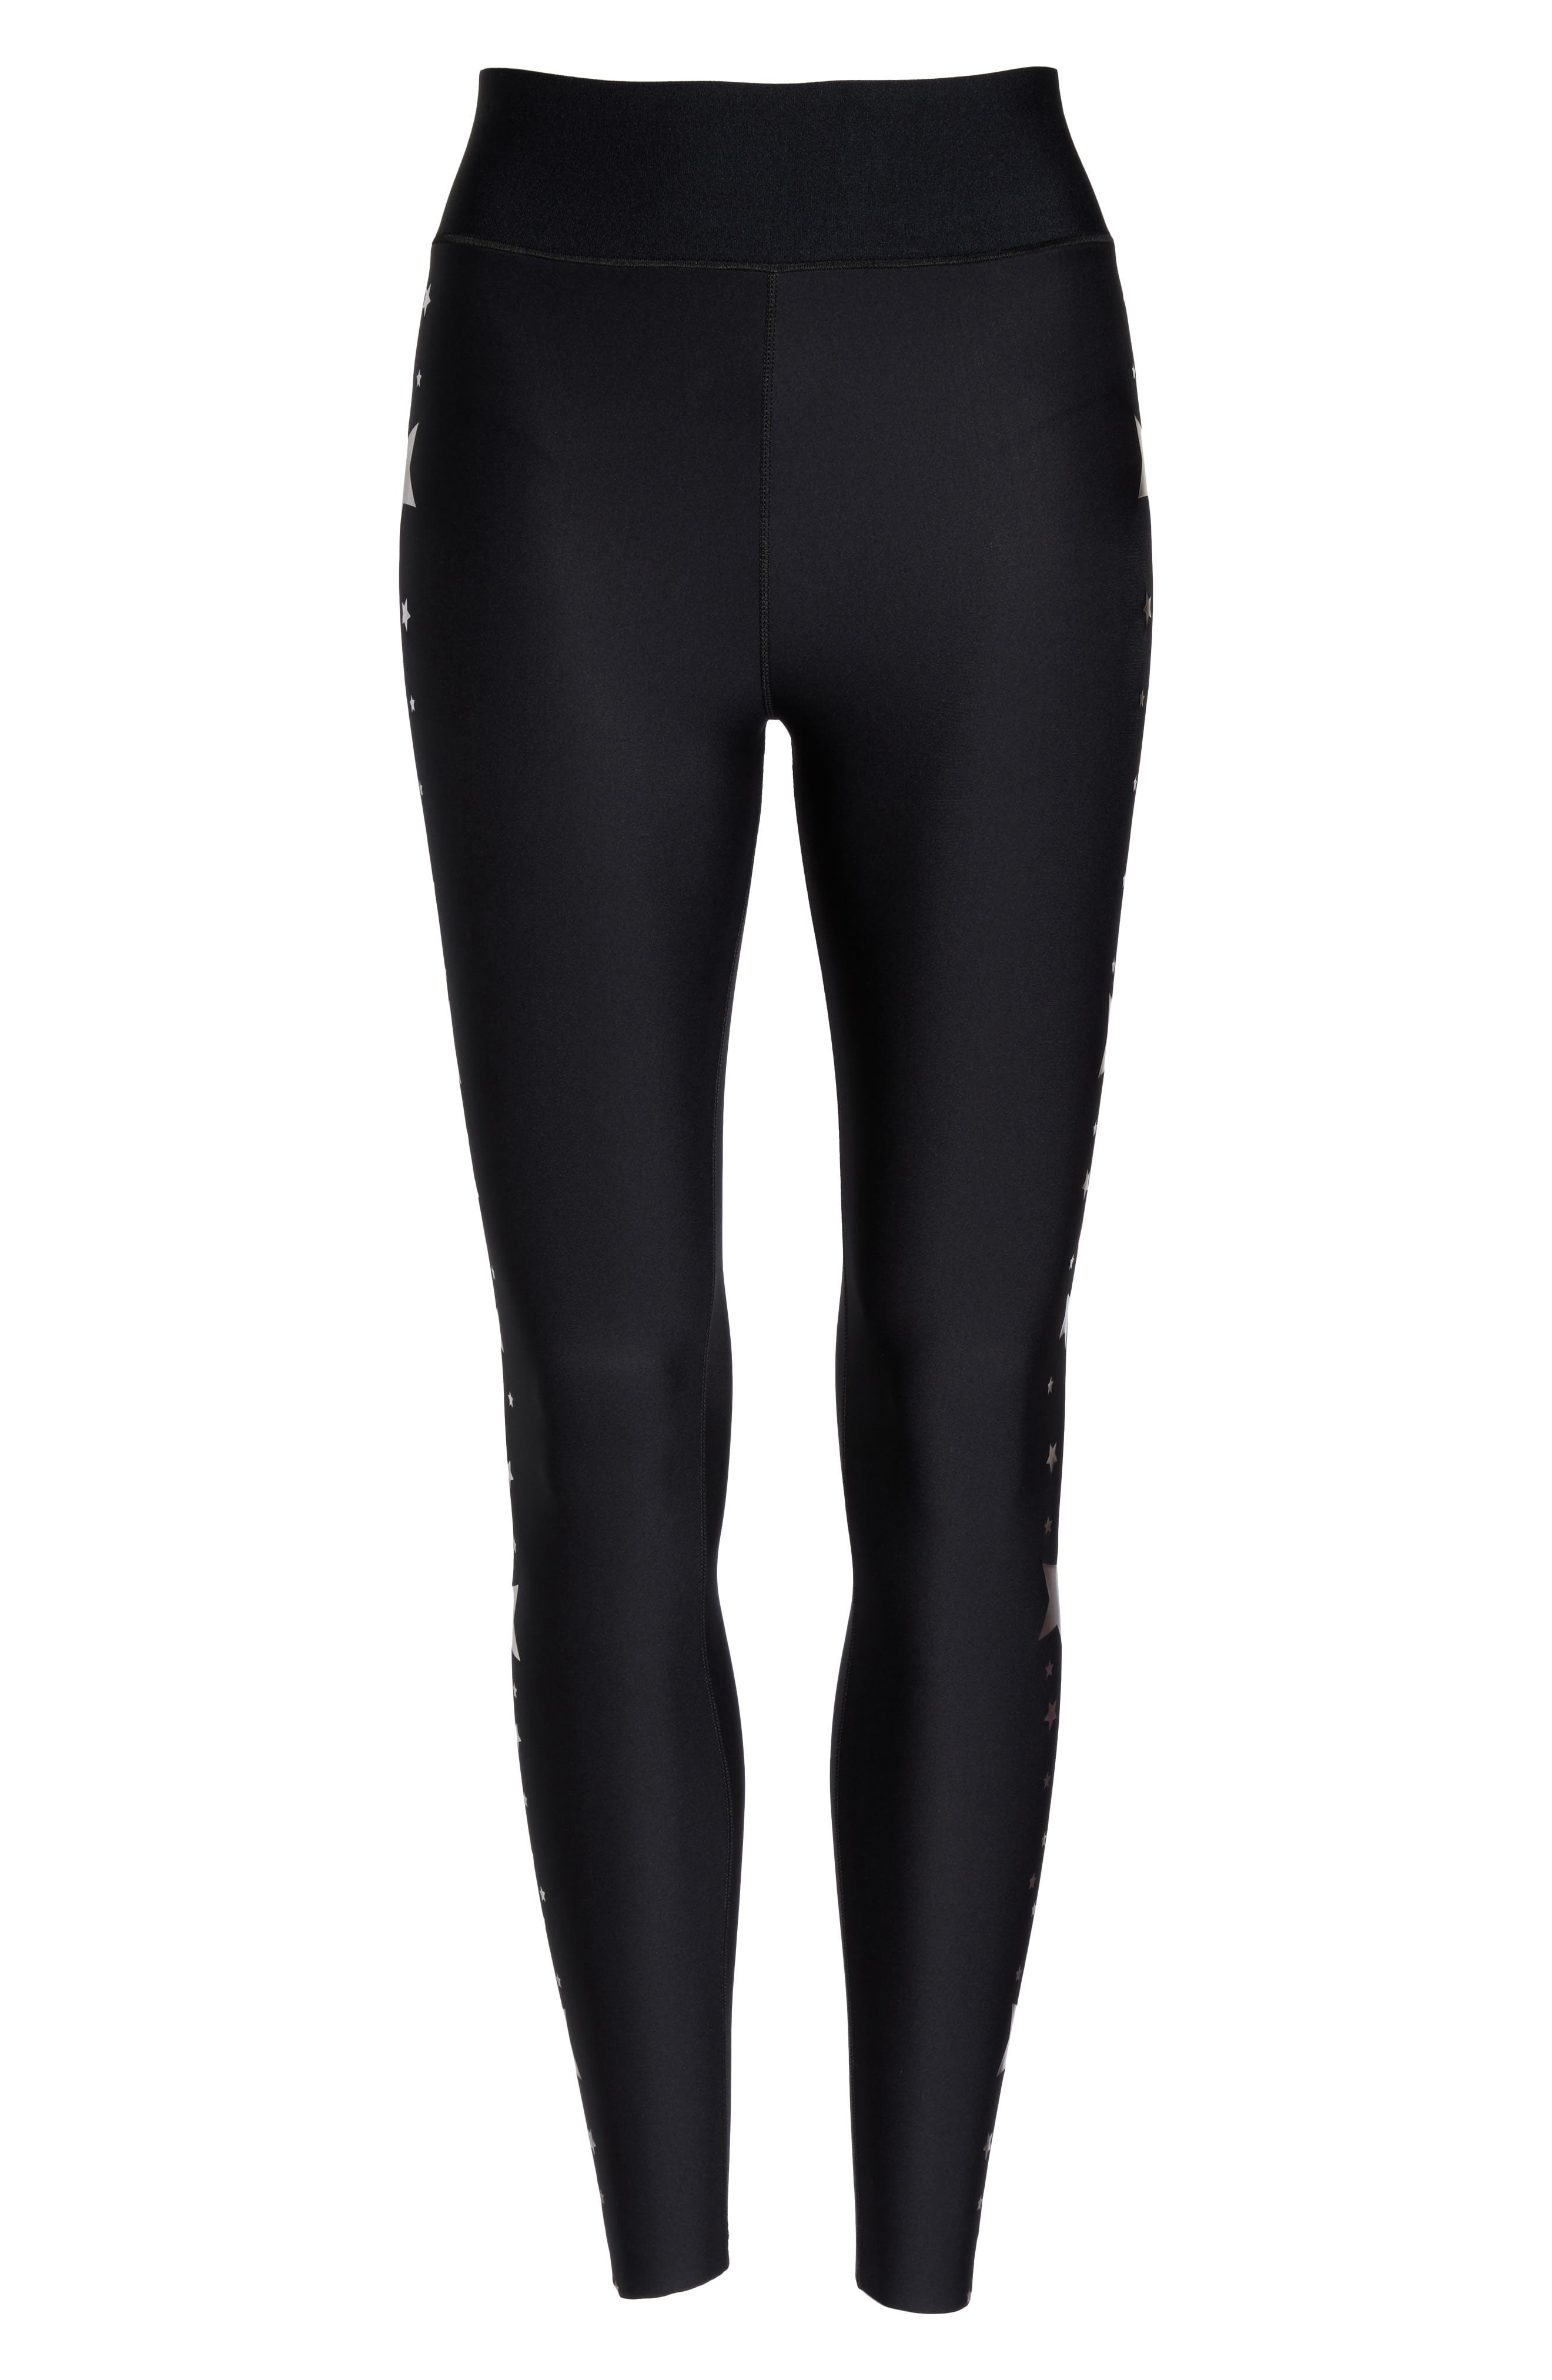 Lux Stellar High Waist Leggings,                             Alternate thumbnail 7, color,                             Nero Rose